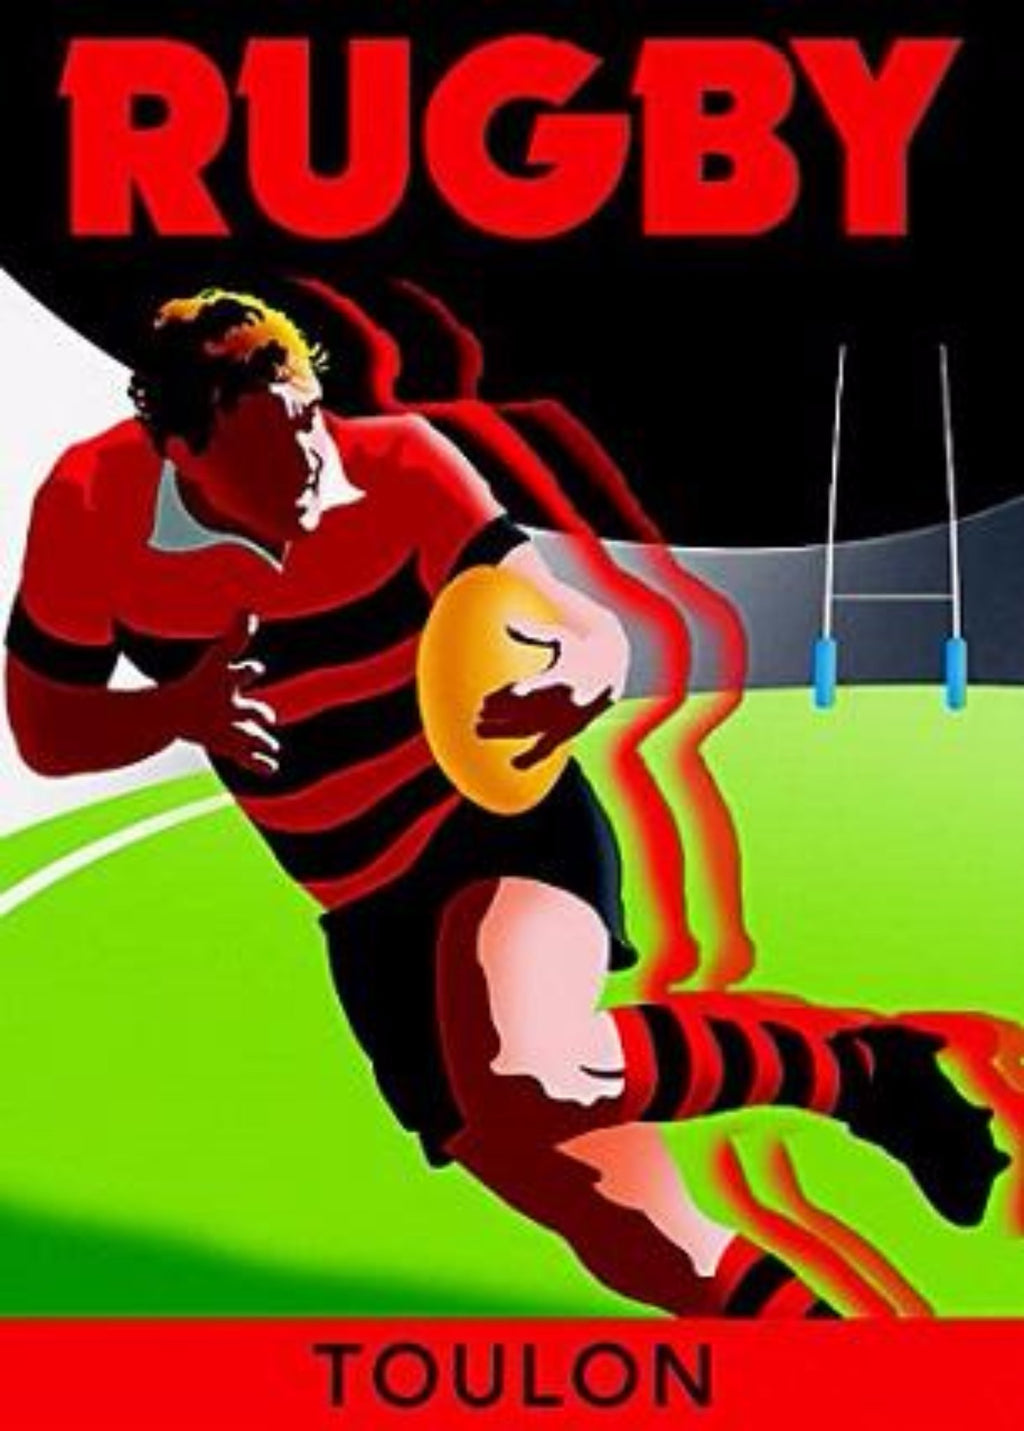 SPORT | RUGBY TOULON 50x70